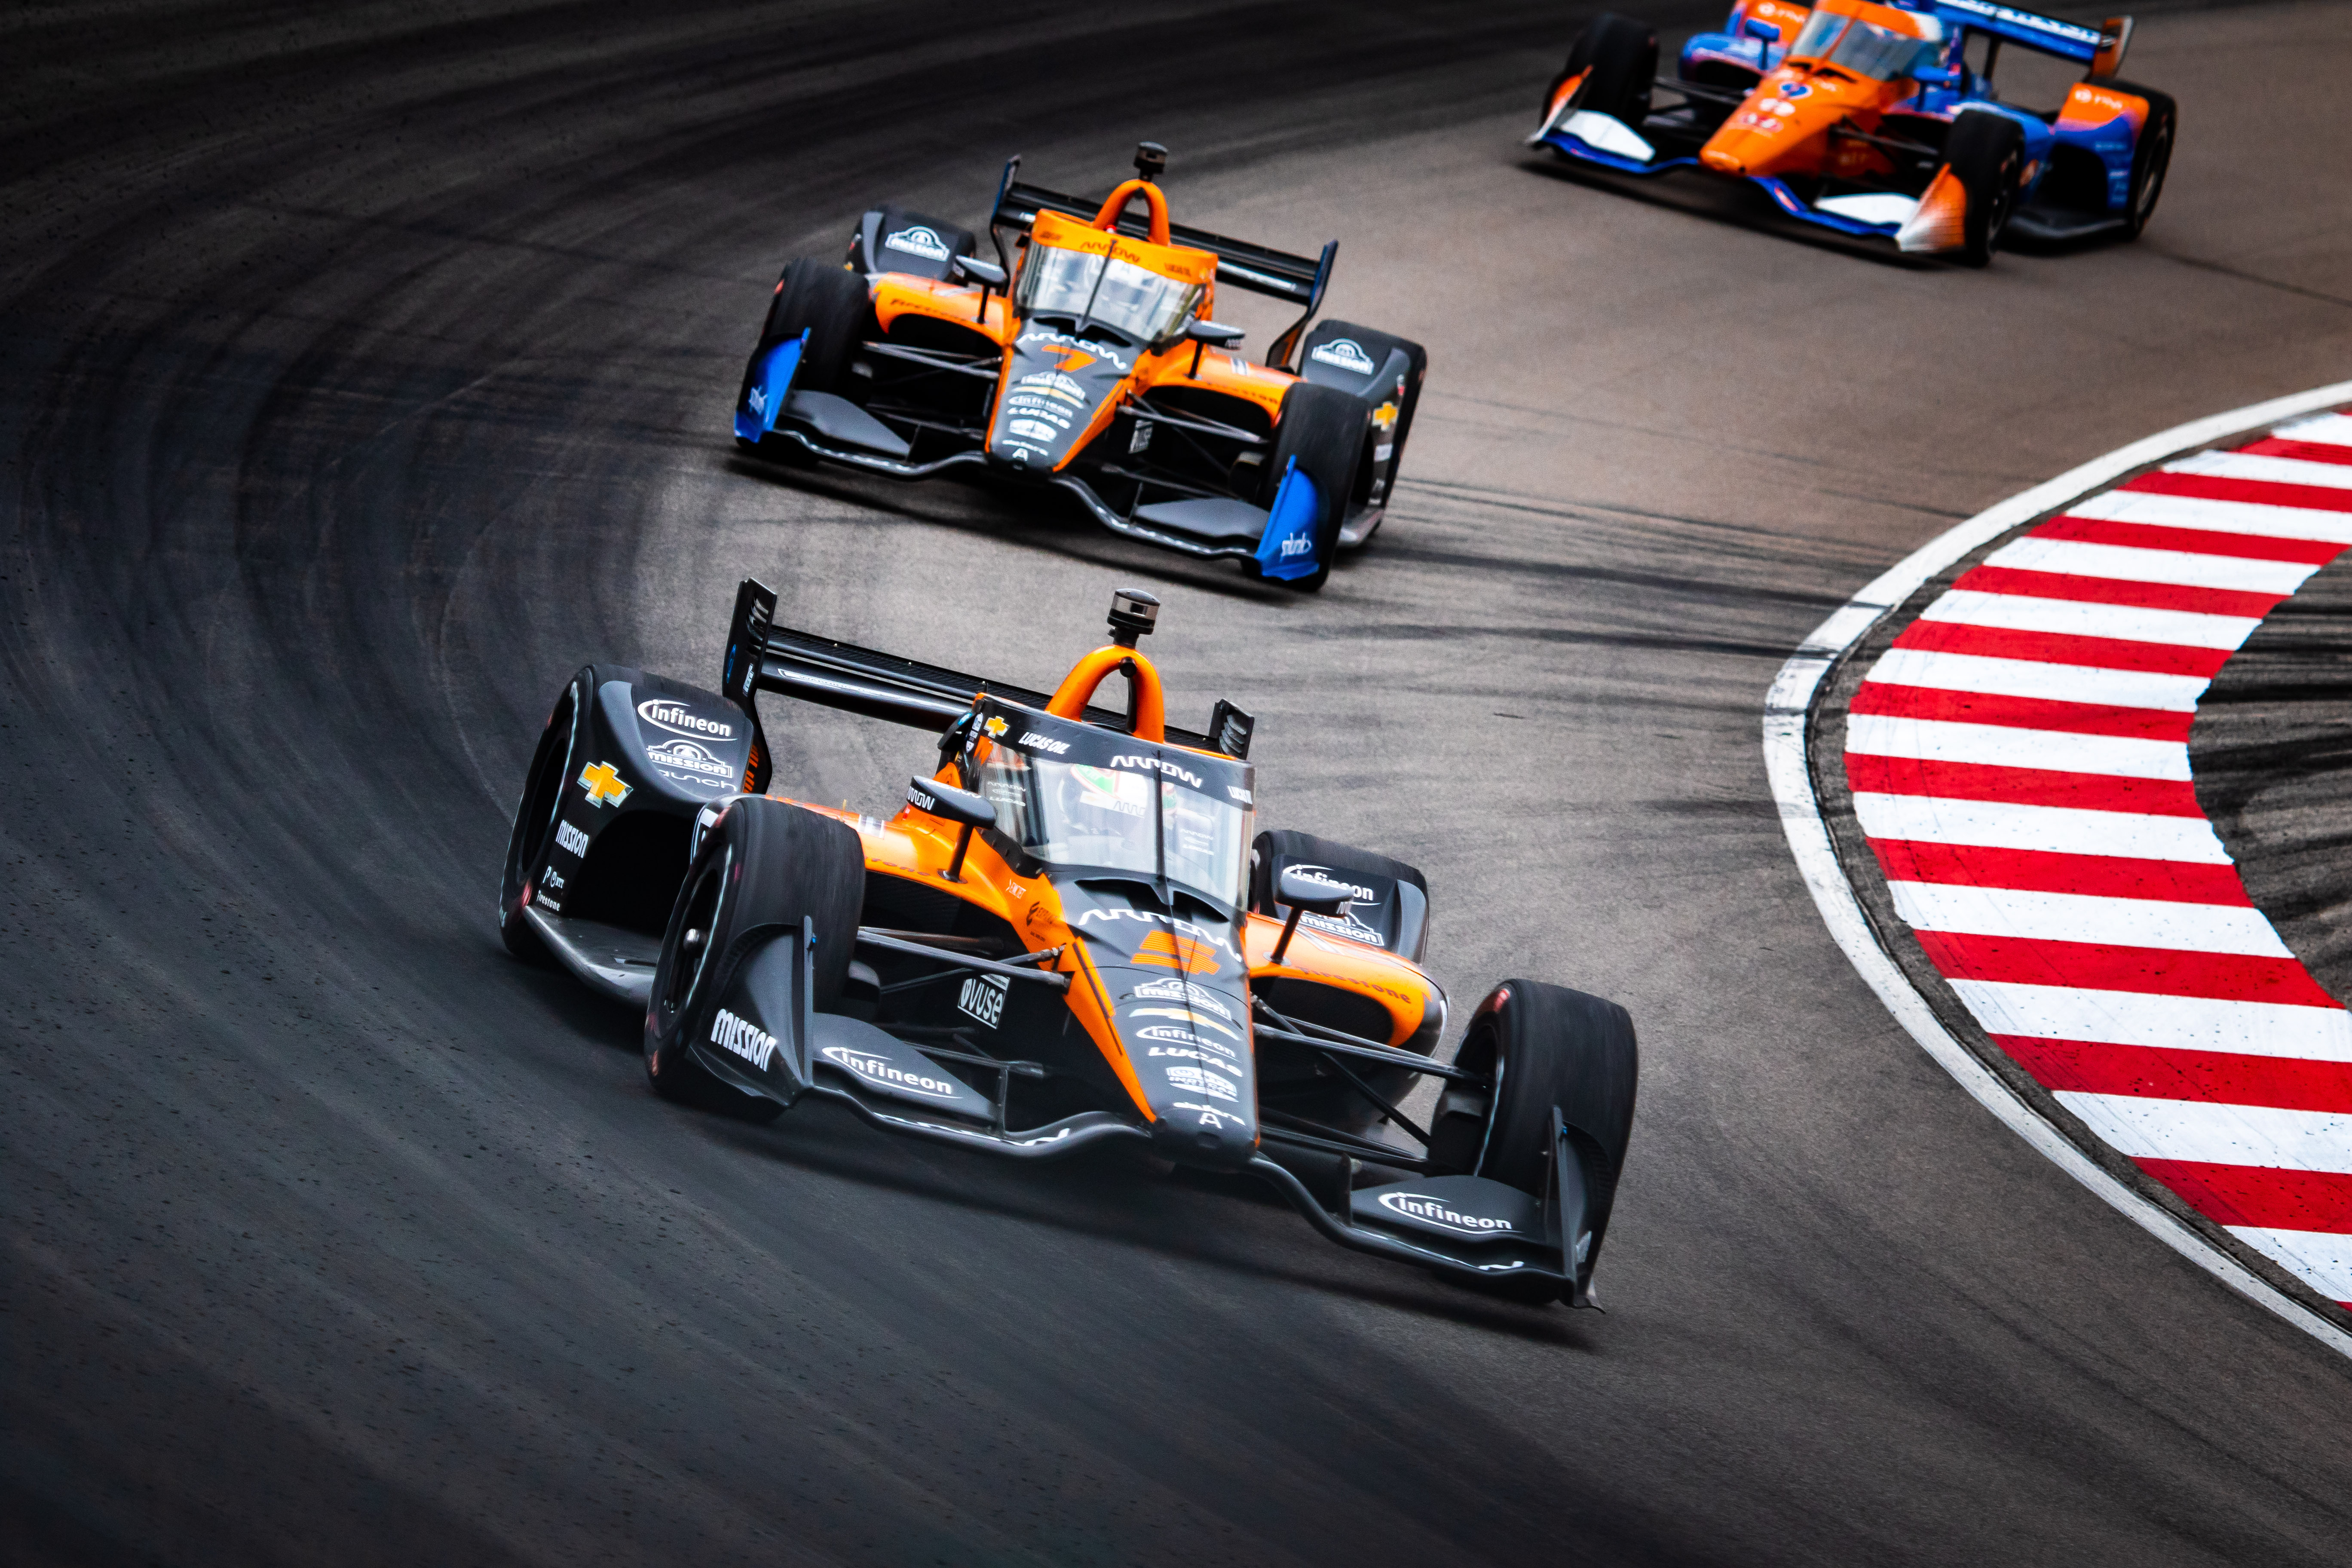 Ntt Indycar Series Bommarito Automotive Group 500